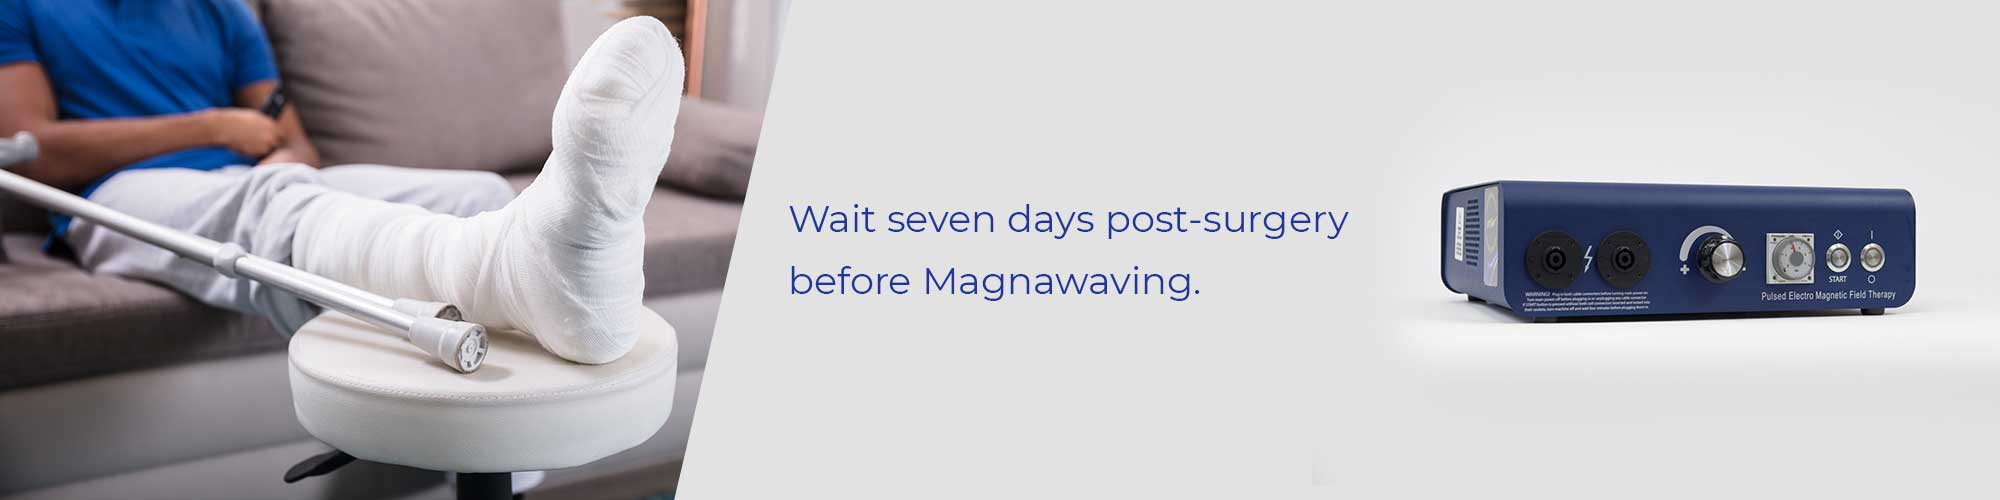 Wait seven days post-surgery before Magnawaving